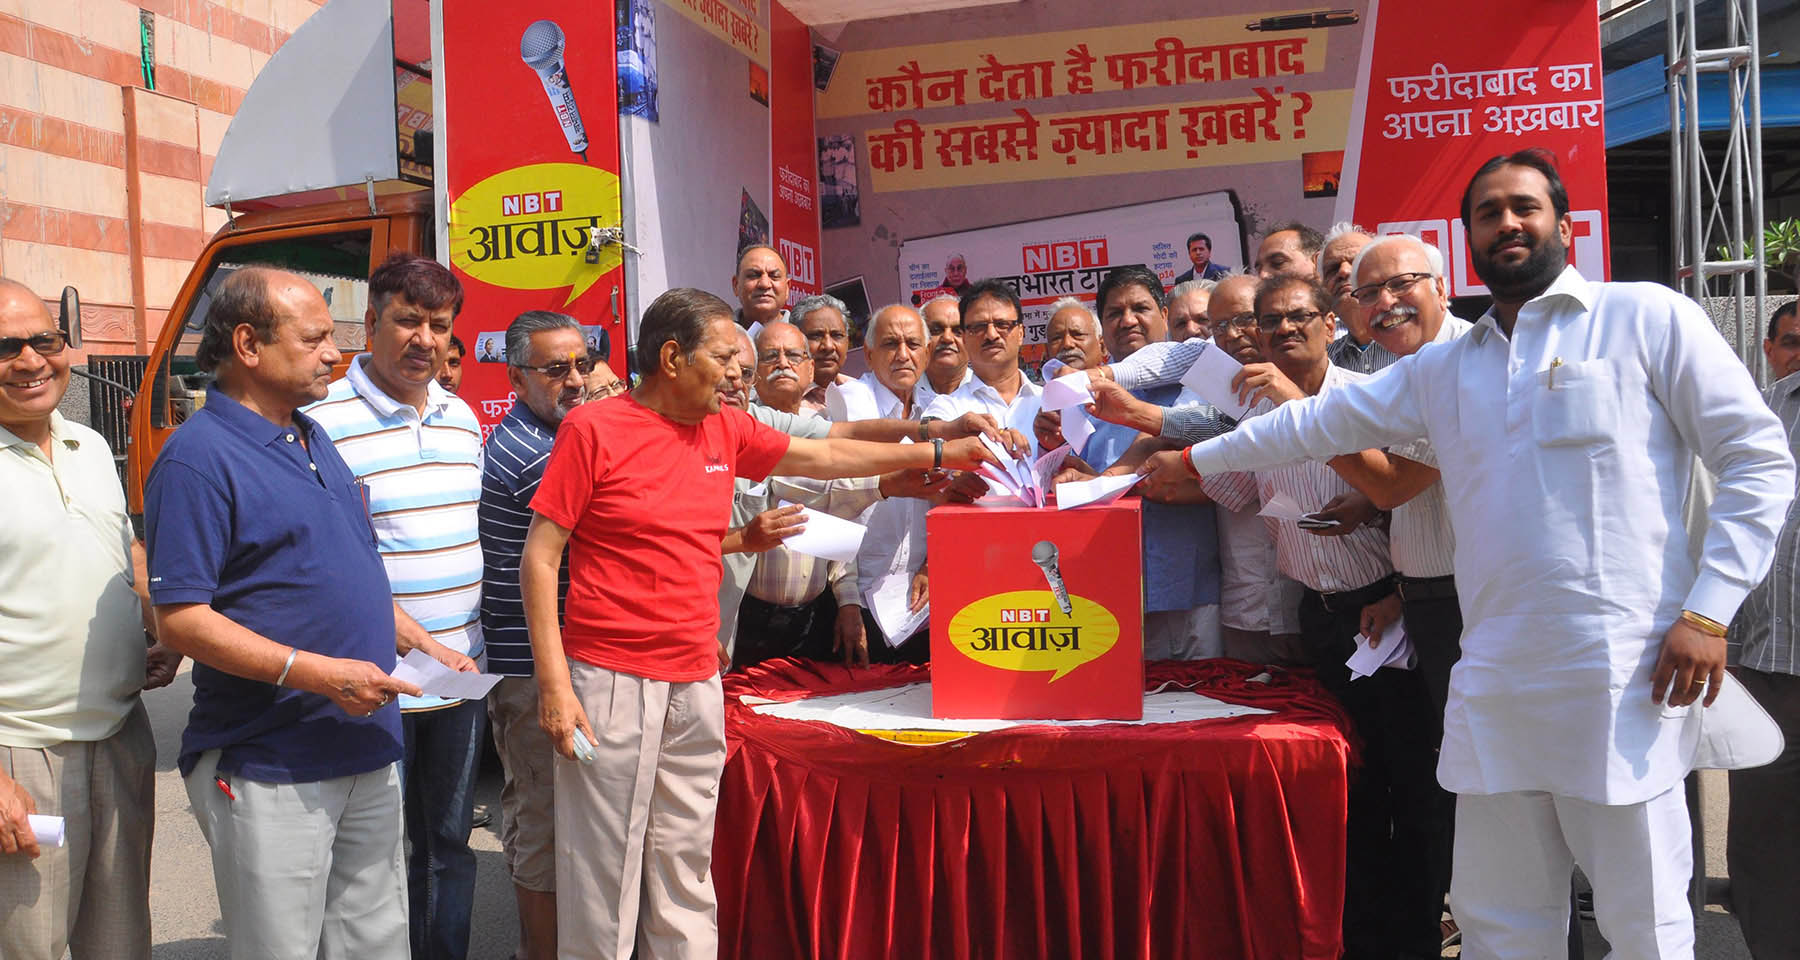 NavBharat Times engages readers with hyperlocal, call-for-change initiative